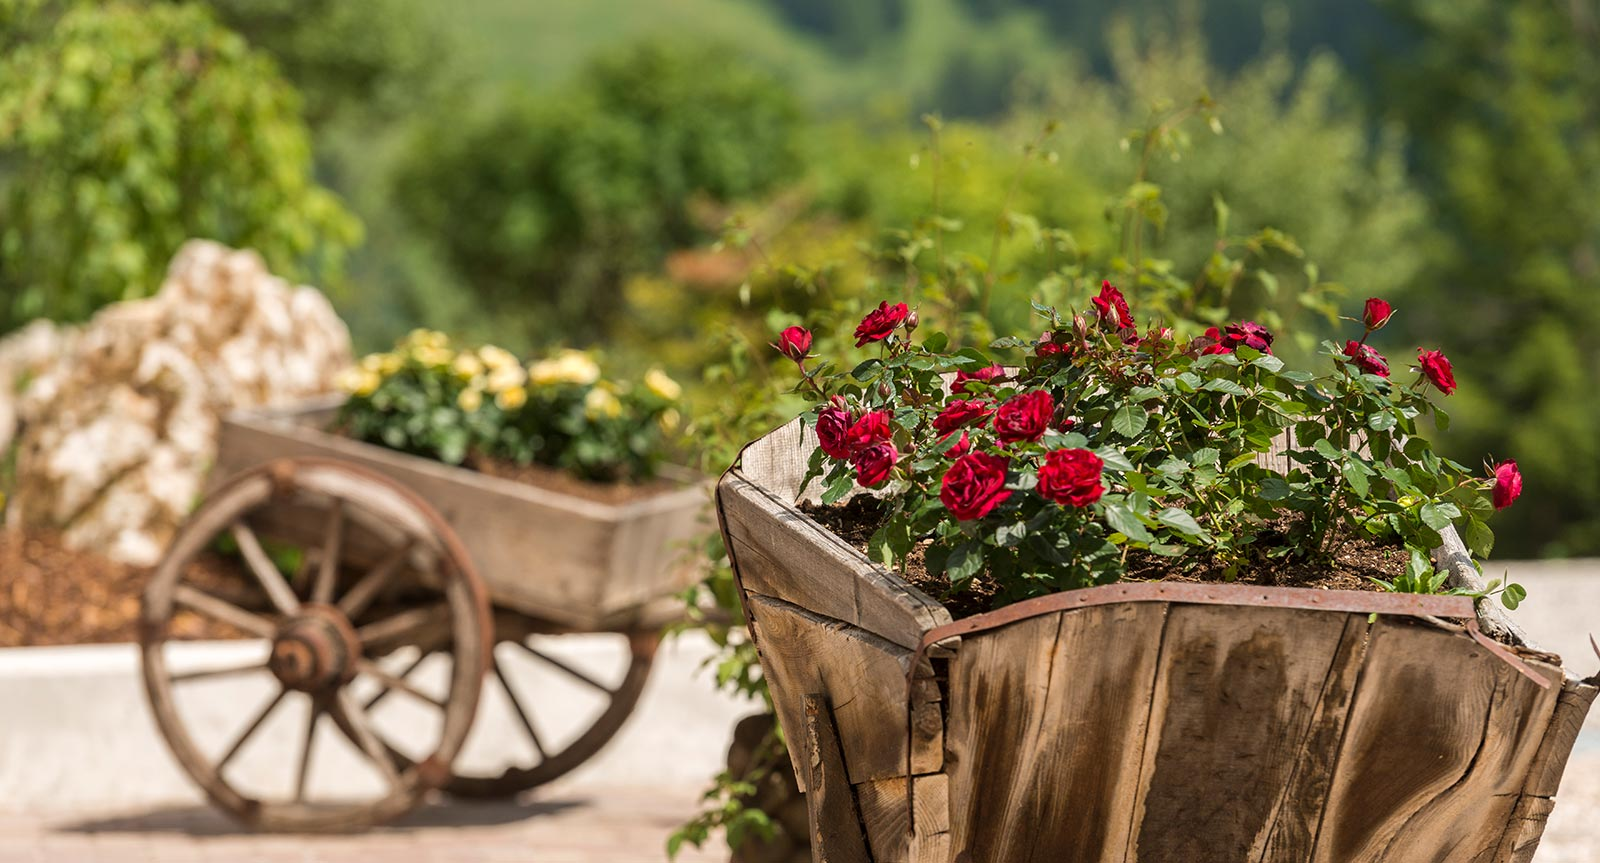 red roses planted in an old wooden wheelbarrow in the garden of Lech da Sompunt